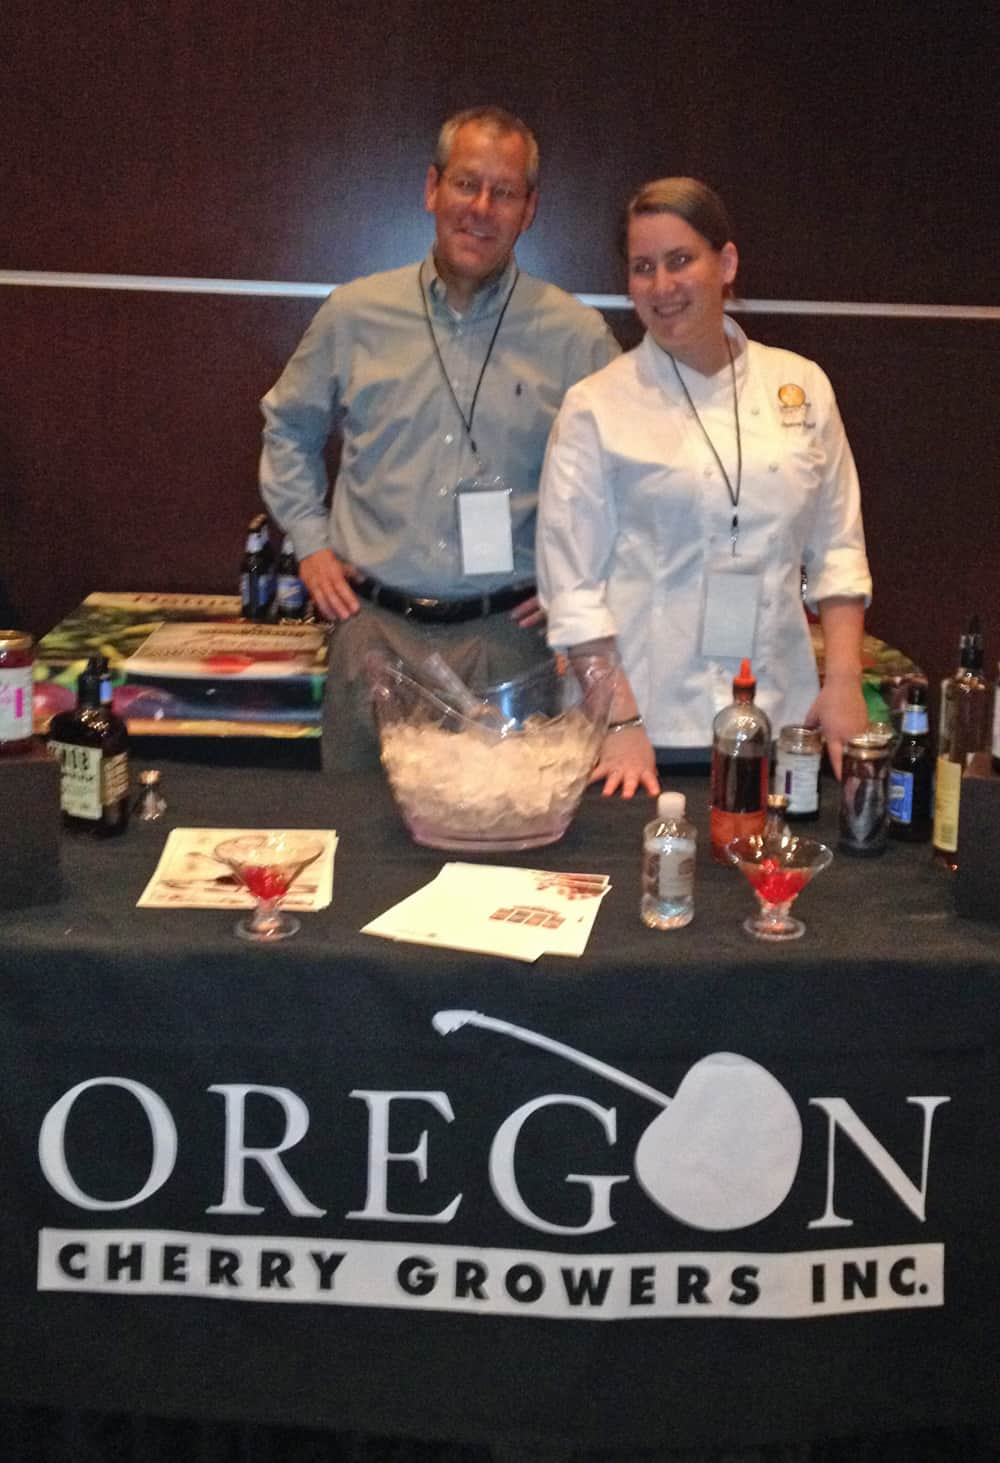 WhiskeyFest 2014 - Oregon Cherries